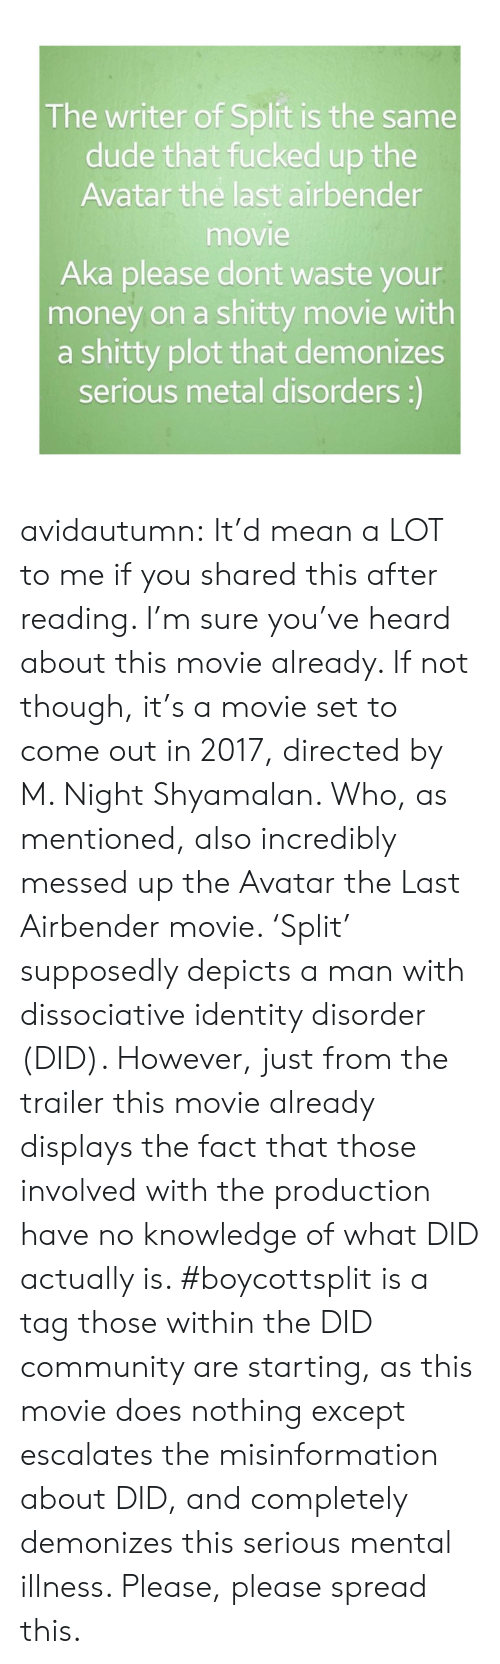 Escalates: The writer of Split is the same  dude that fucked up the  Avatar the last airbender  movie  Aka please dont waste your  money on a shitty movie with  a shitty plot that demonizes  serious metal disorders:) avidautumn:  It'd mean a LOT to me if you shared this after reading.   I'm sure you've heard about this movie already.   If not though, it's a movie set to come out in 2017, directed by  M. Night Shyamalan. Who, as mentioned, also incredibly messed up the Avatar the Last Airbender movie. 'Split' supposedly depicts a man with dissociative identity disorder (DID).   However, just from the trailer this movie already displays the fact that those involved with the production have no knowledge of what DID actually is.   #boycottsplit is a tag those within the DID community are starting, as this movie does nothing except escalates the misinformation about DID, and completely demonizes this serious mental illness.   Please, please spread this.